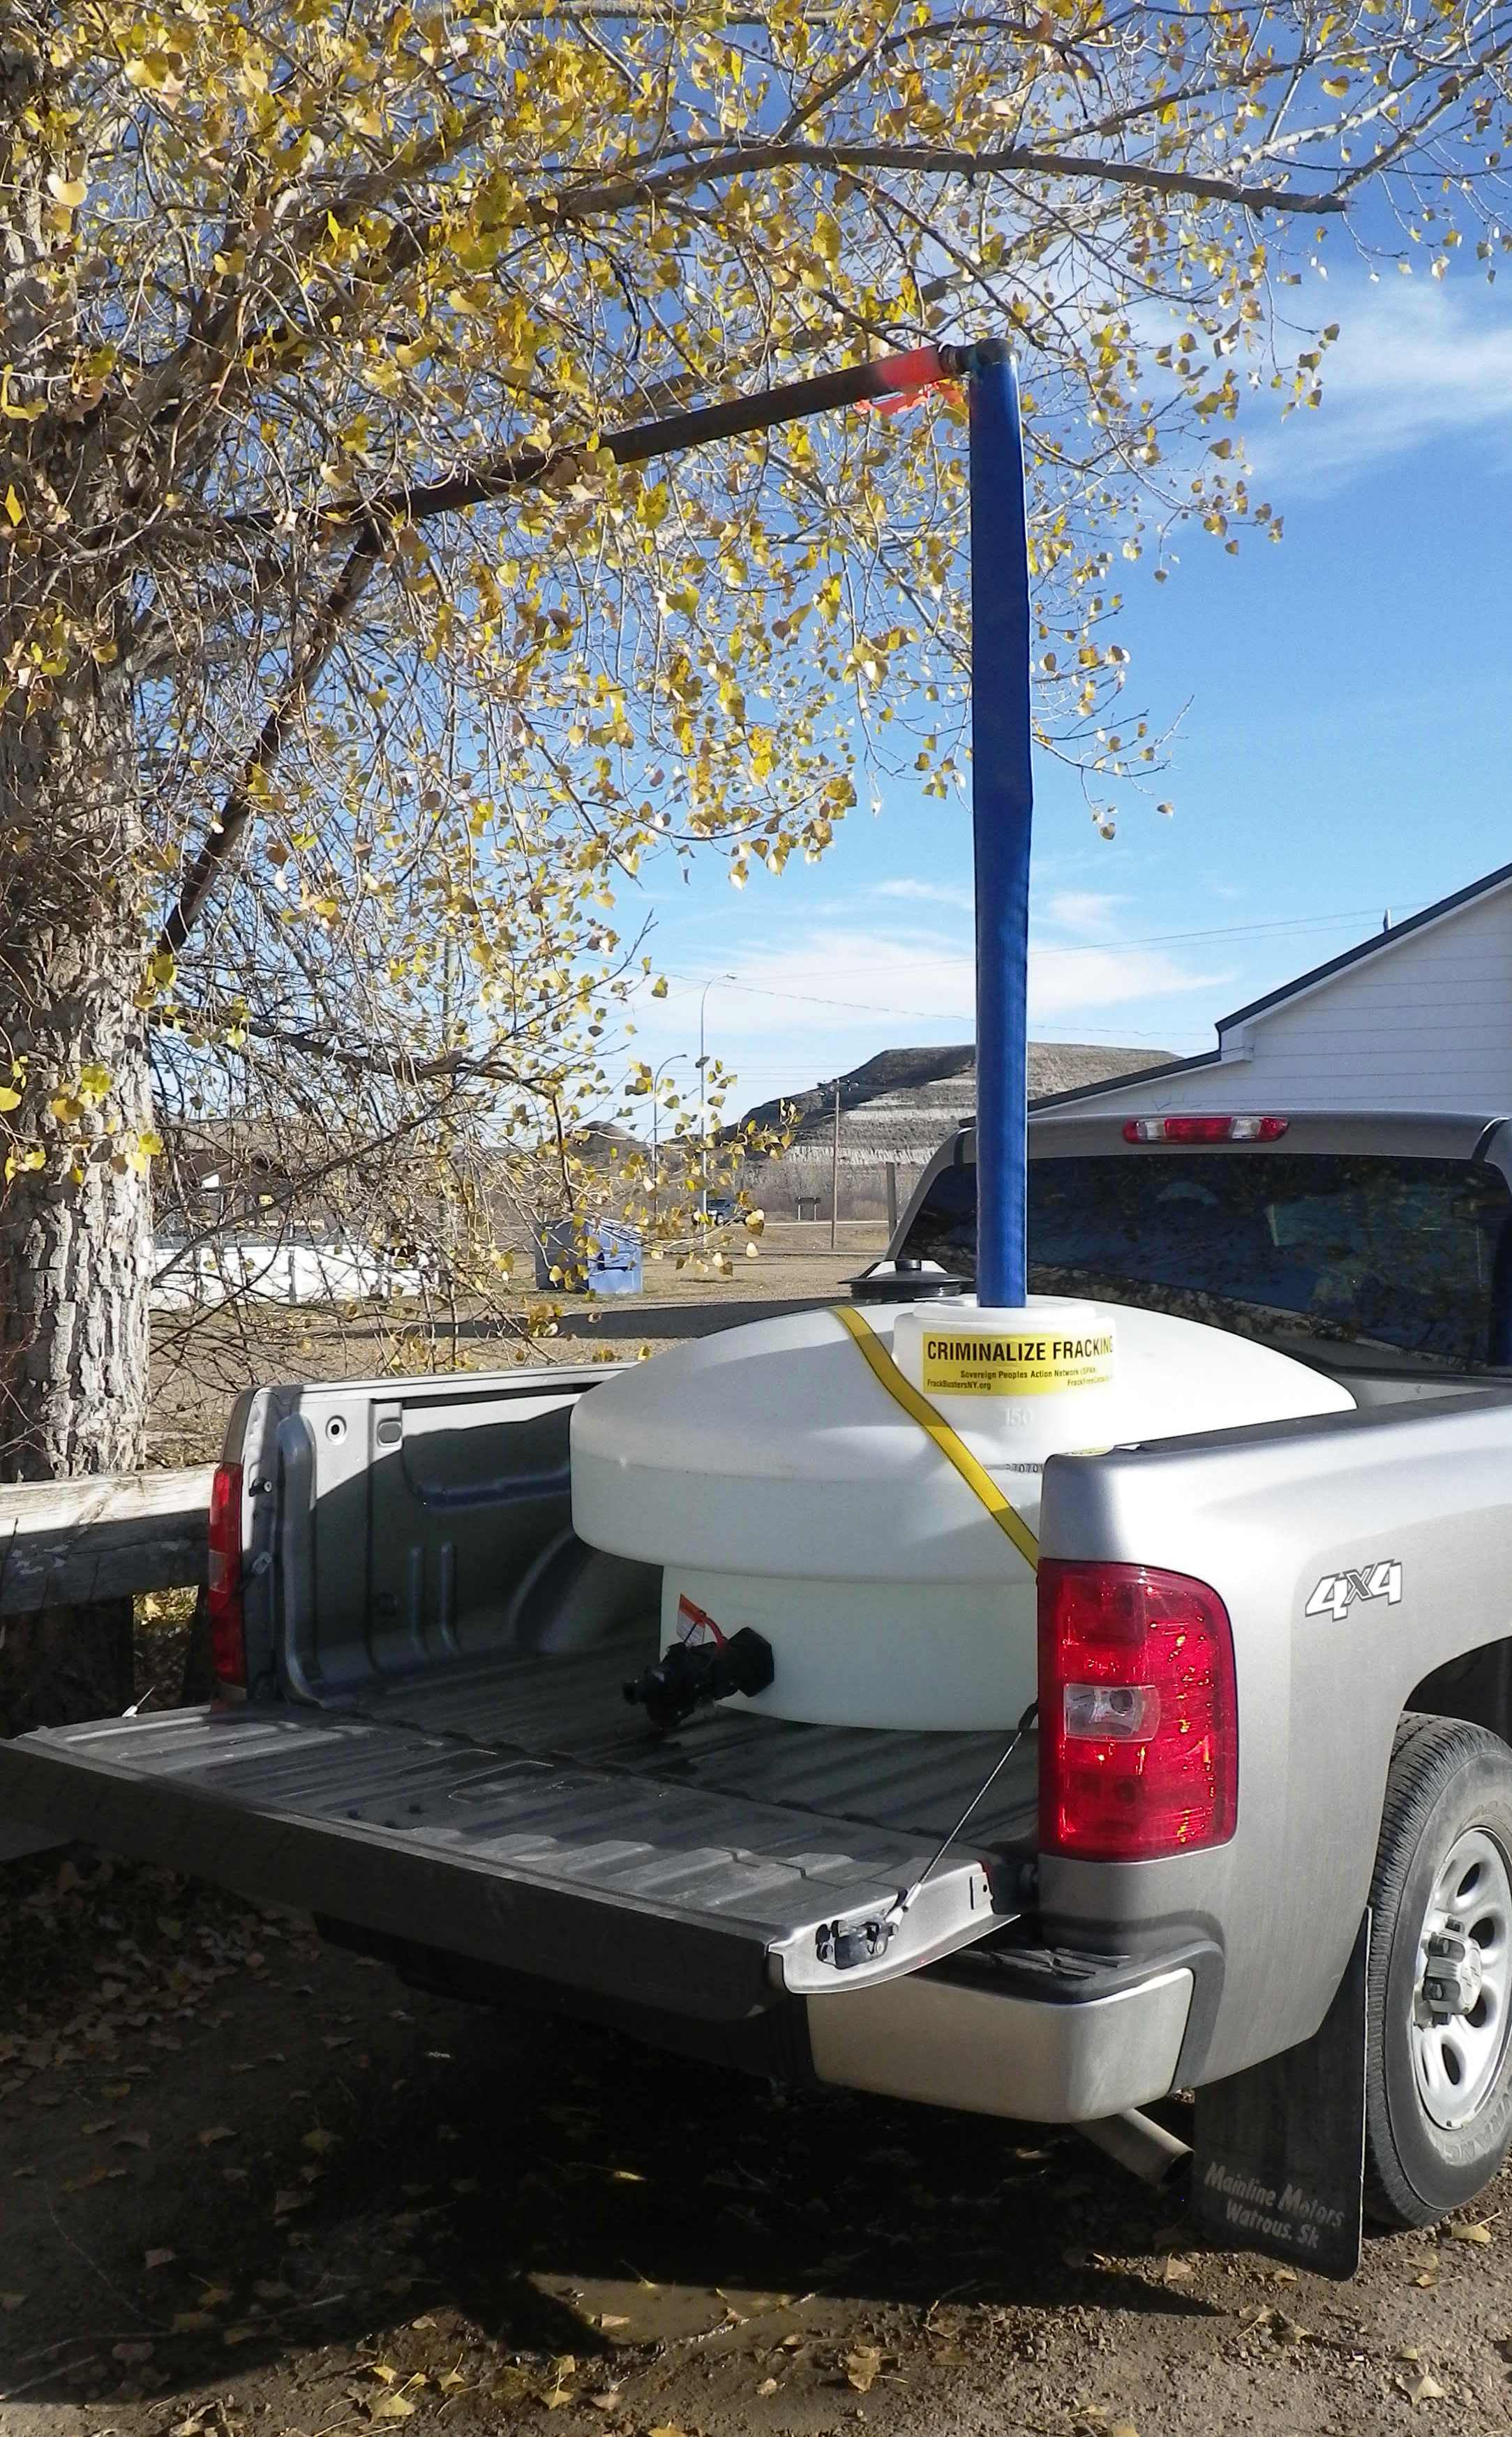 2015 10 21 Ernst hauling water from Rosedale, 45 minutes one way drive from Rosebud, NY criminalize fracing sticker on tank